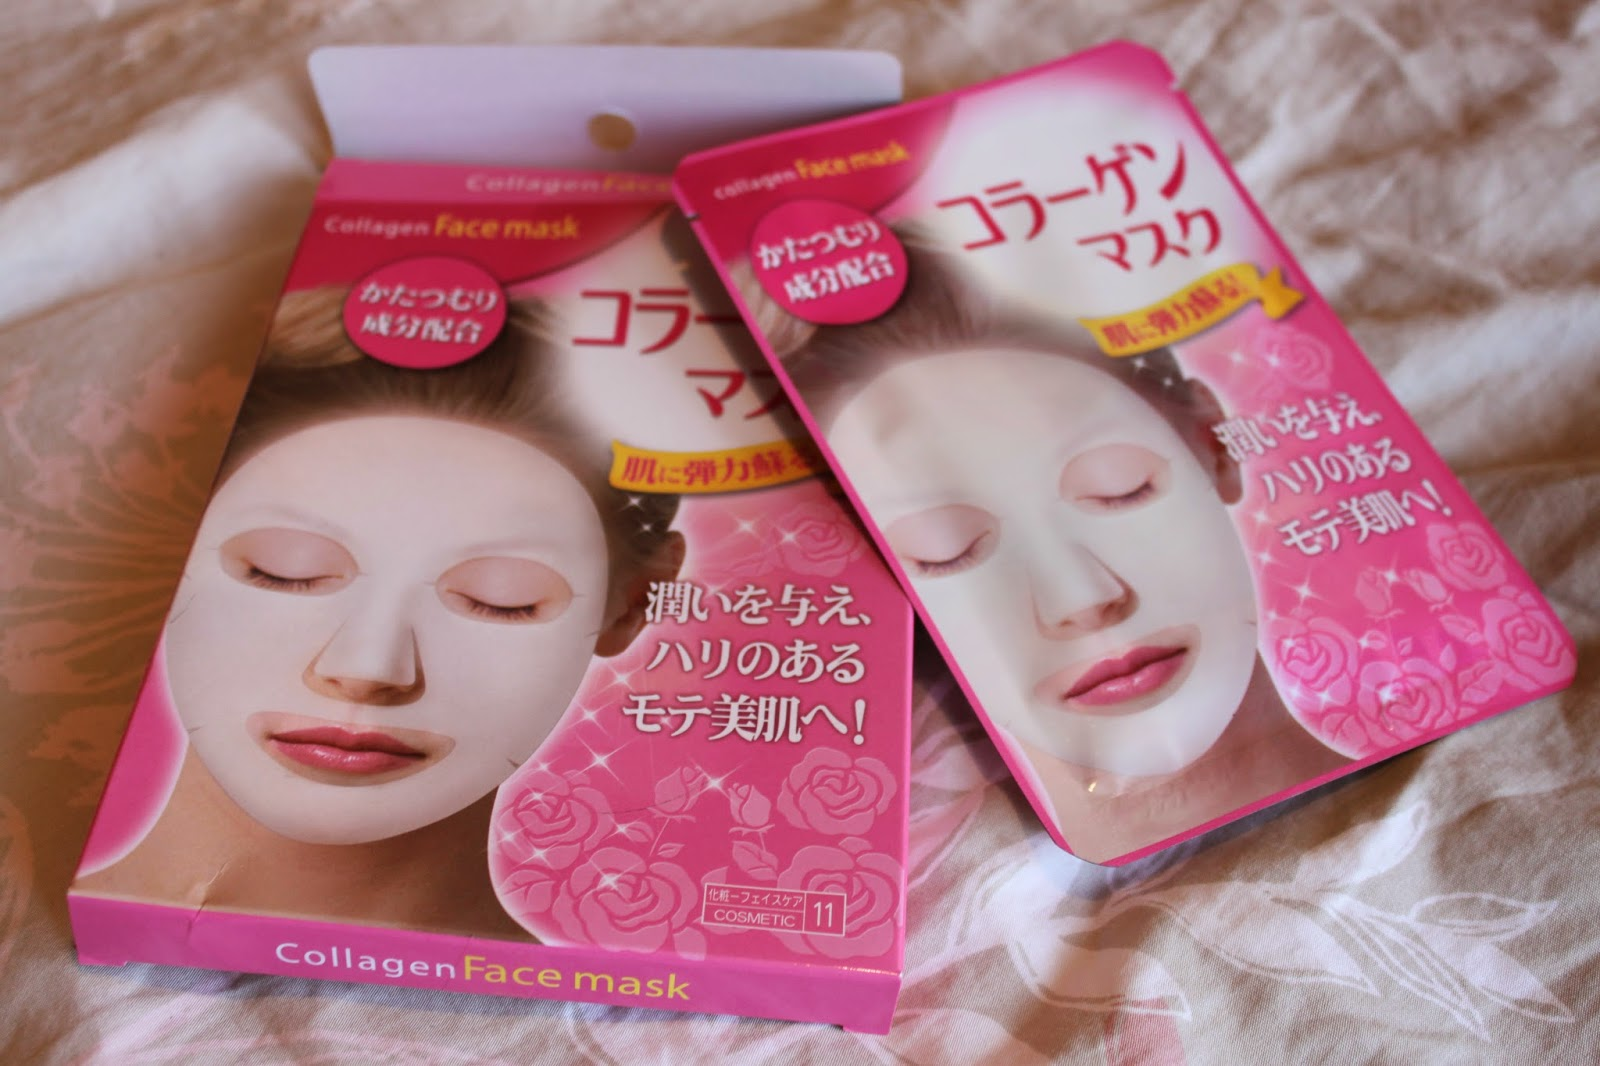 daiso japan cosmetic makeup and skincare haul may 2014 review sheet masks mascara base coat eyebrow pencil thebeautybreakdown the beauty breakdown morgansbbd